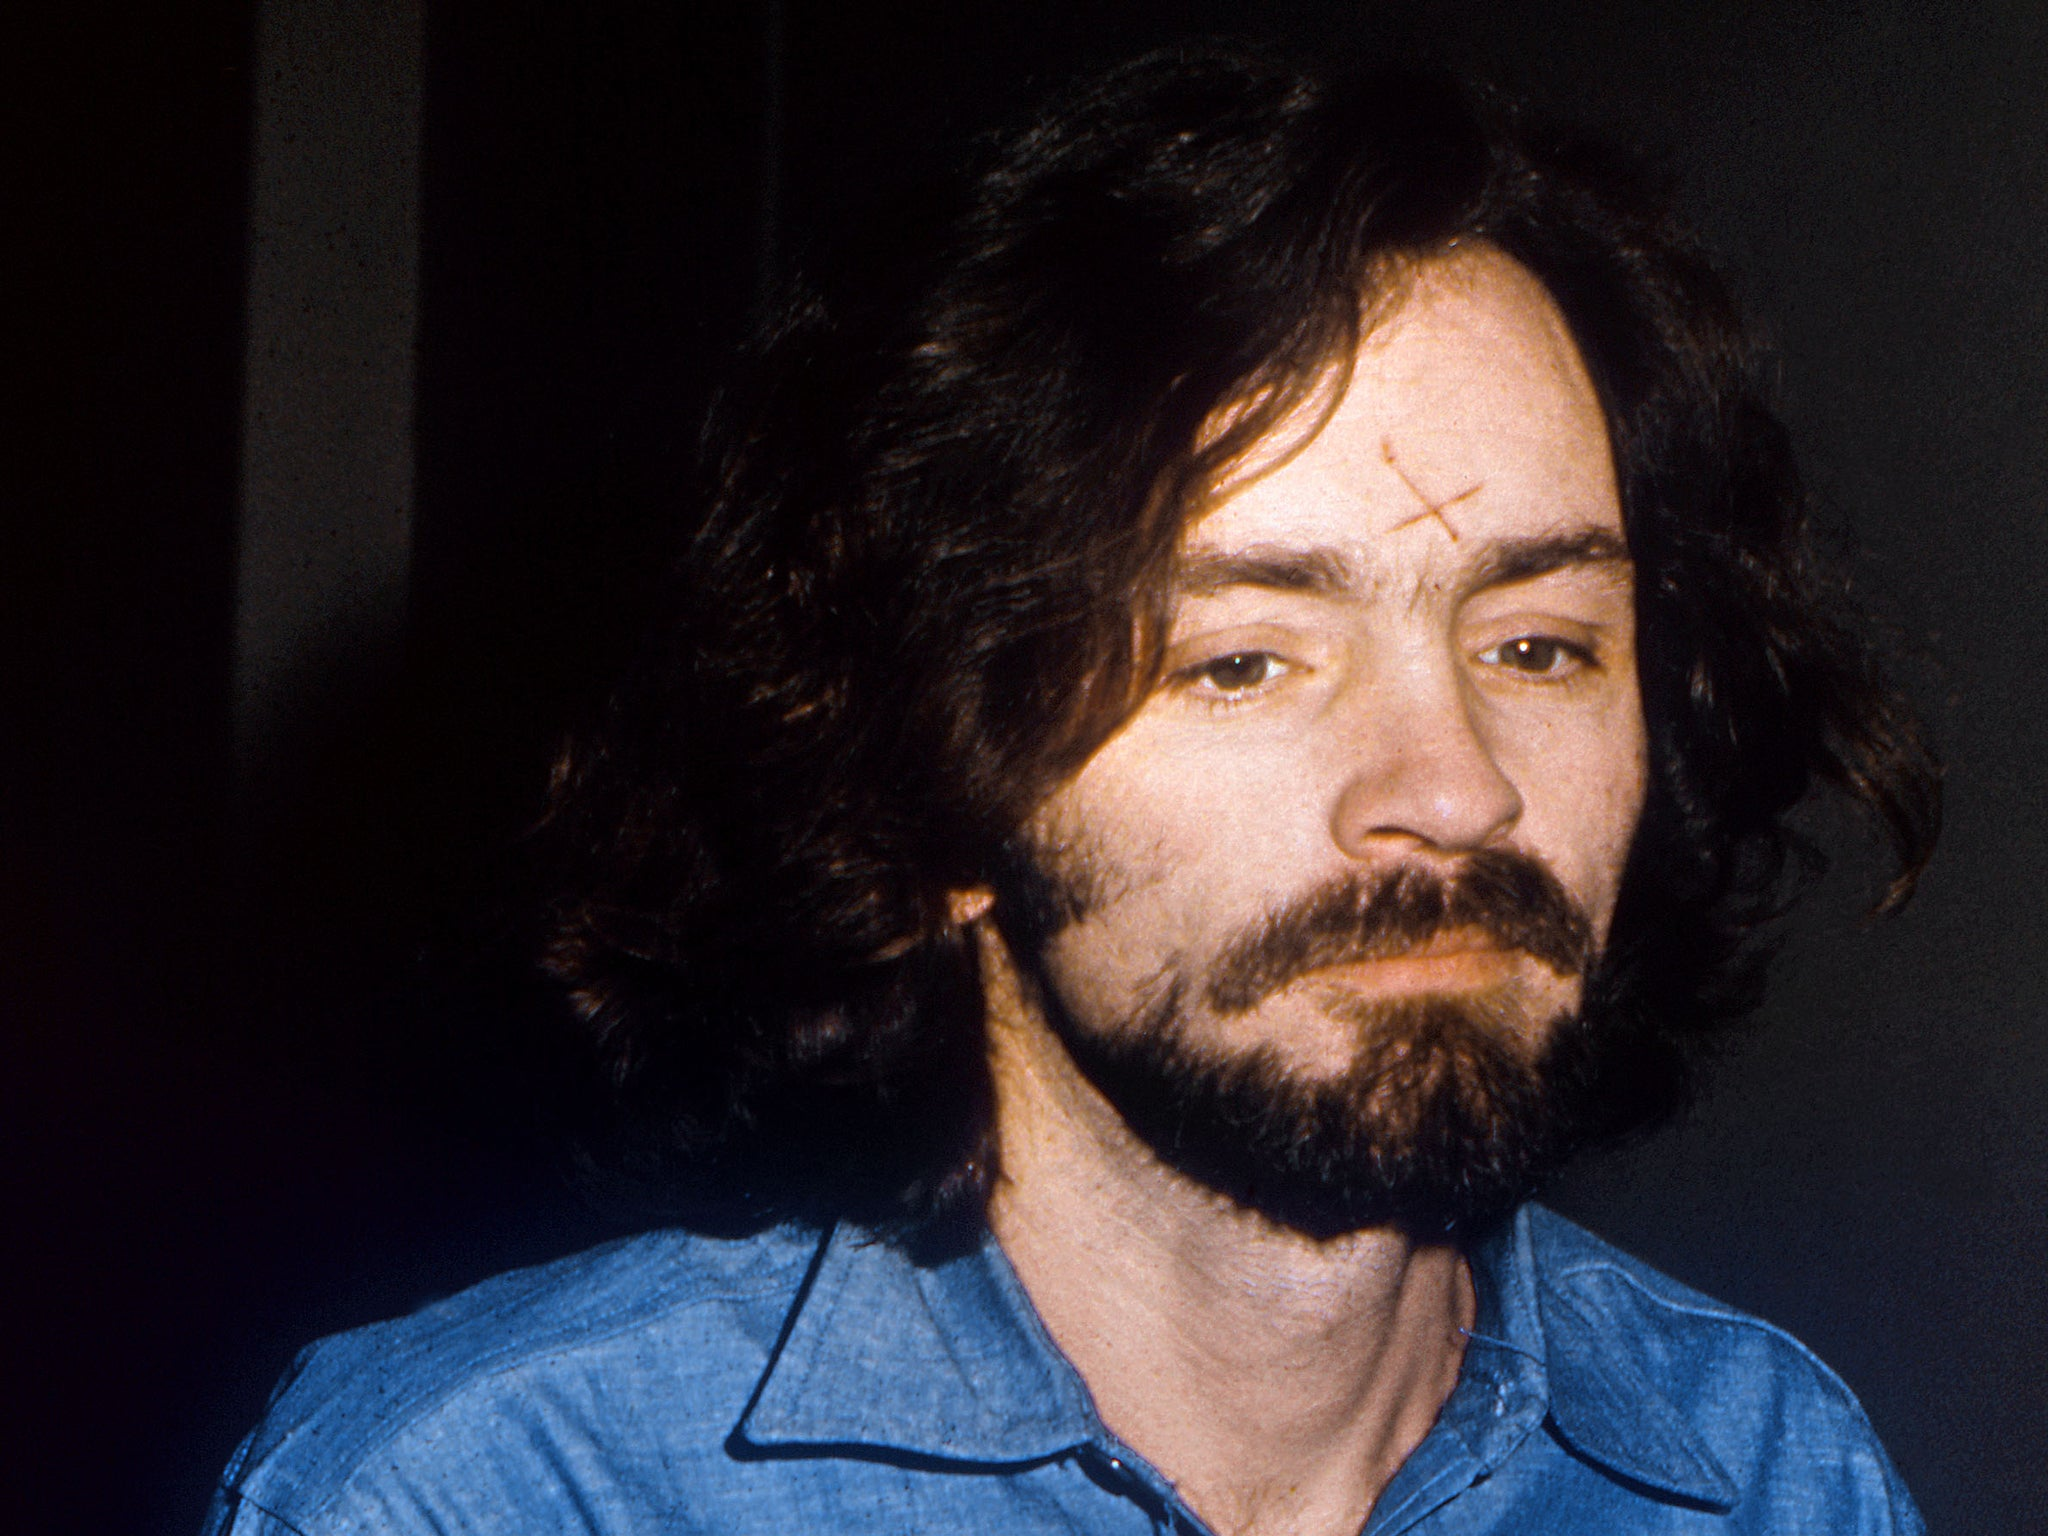 Charles Manson dead: Notorious serial killer and cult leader